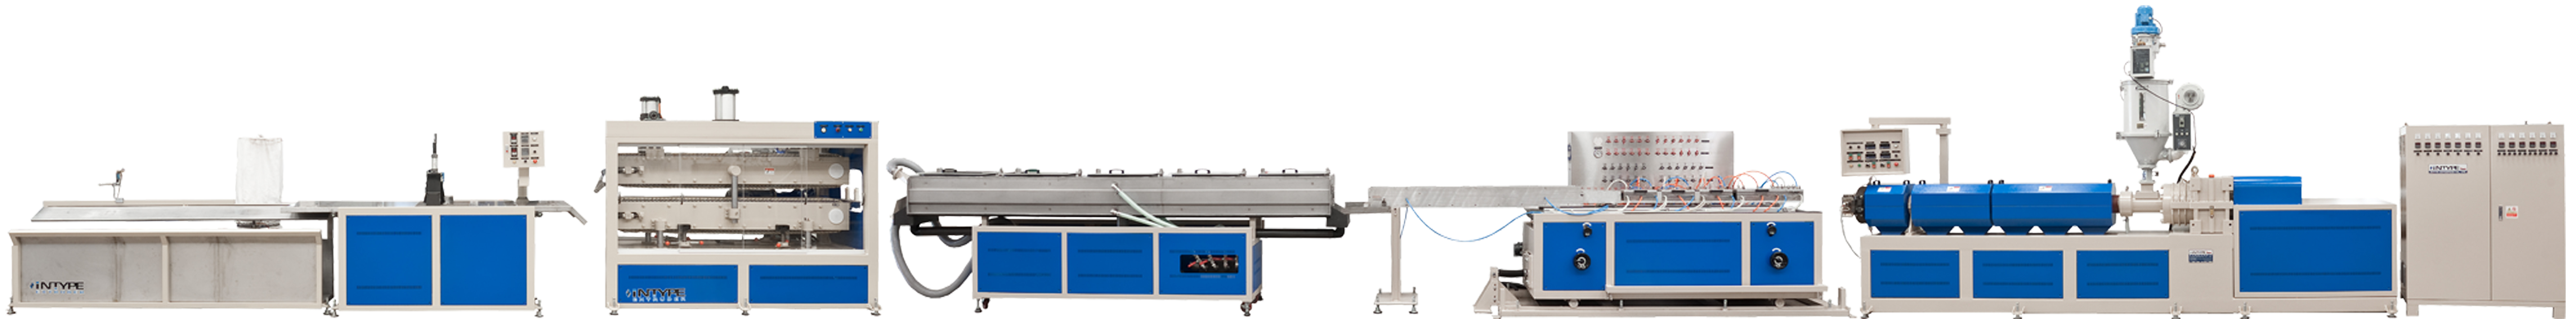 TPE(Thermoplastic Rubber) Wood-Like Profile Extrusion Machine